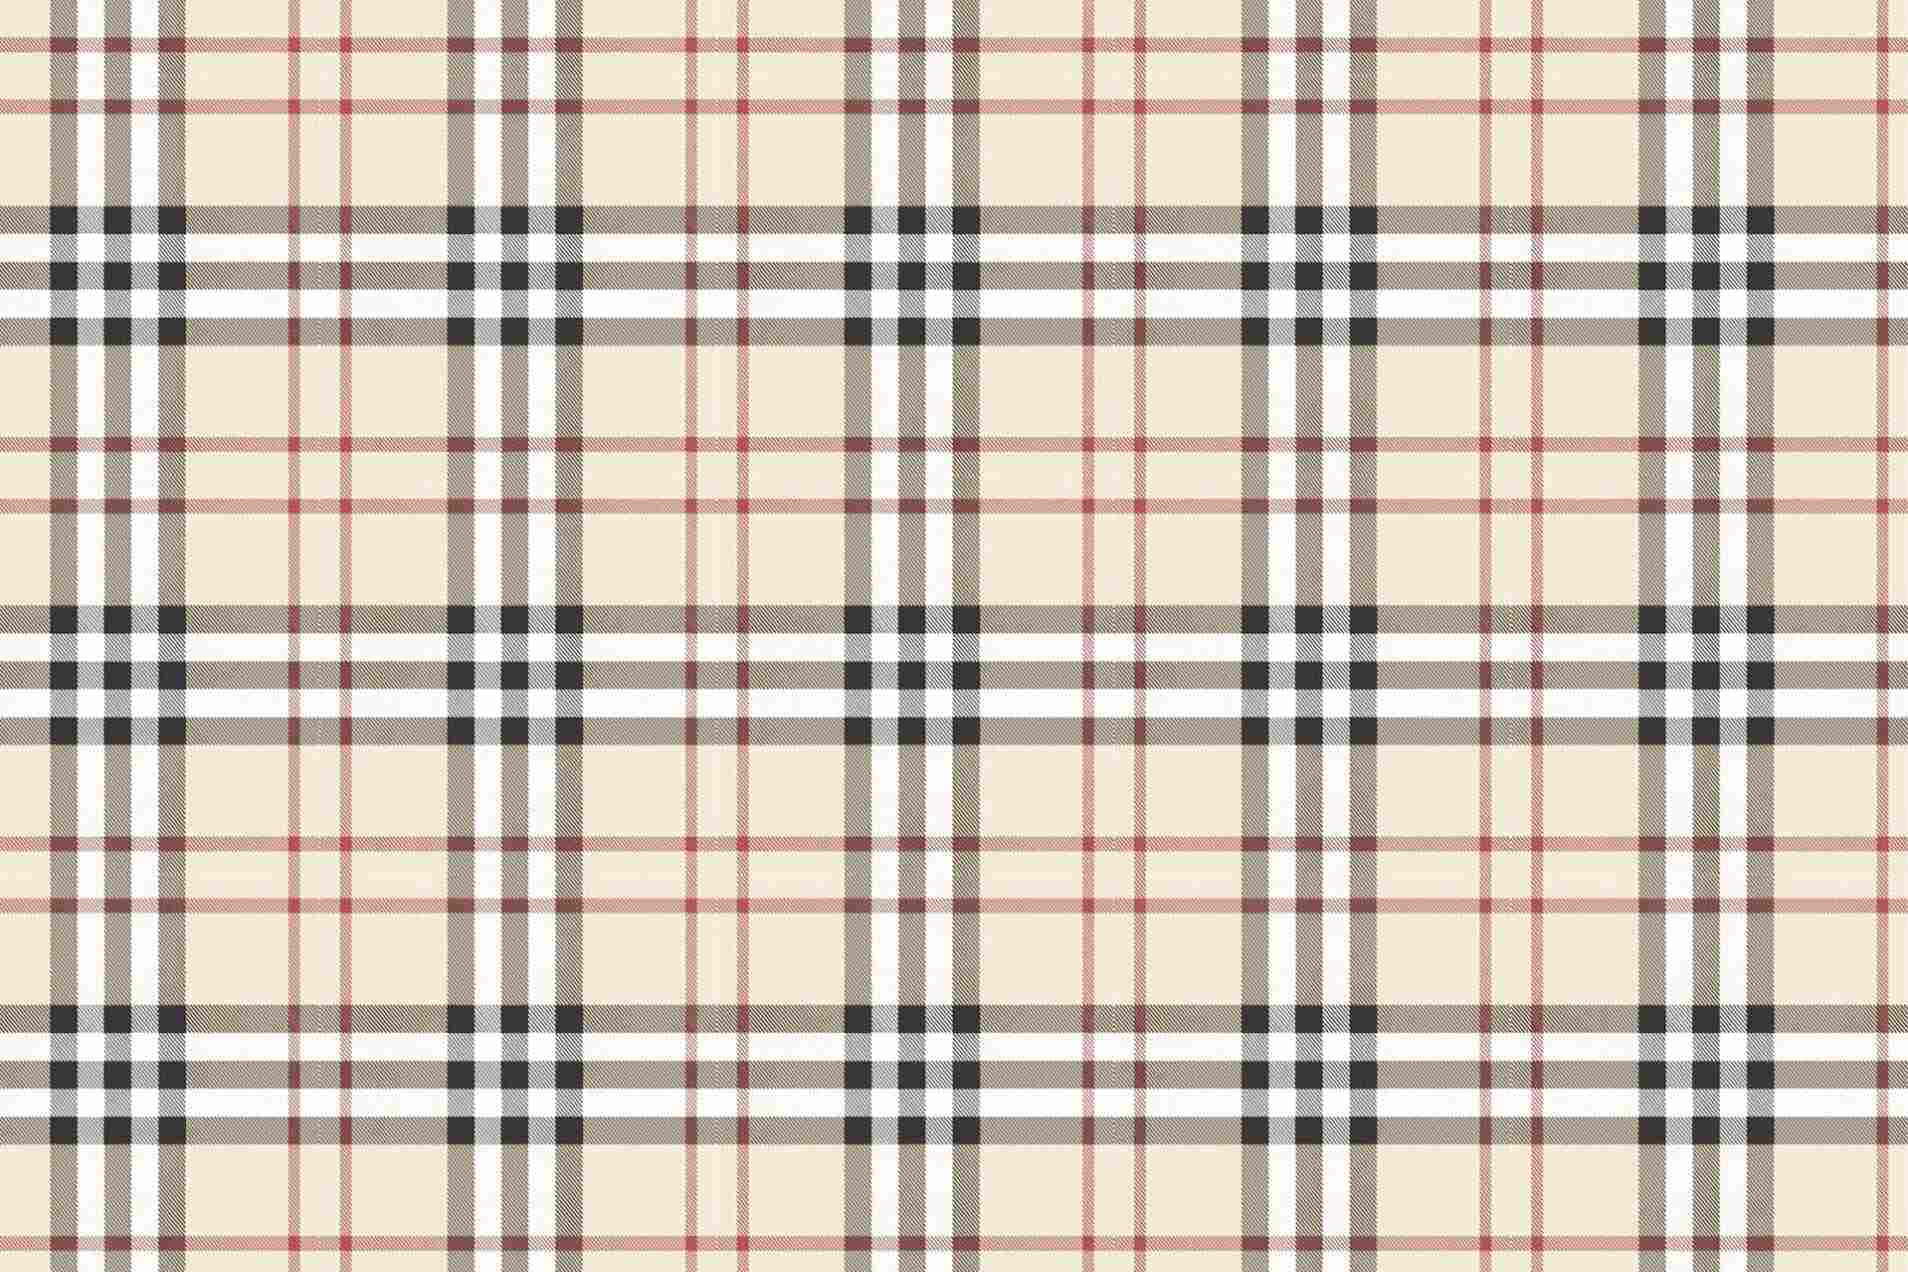 File Burberry Pattern Svg Wikimedia Commons 10